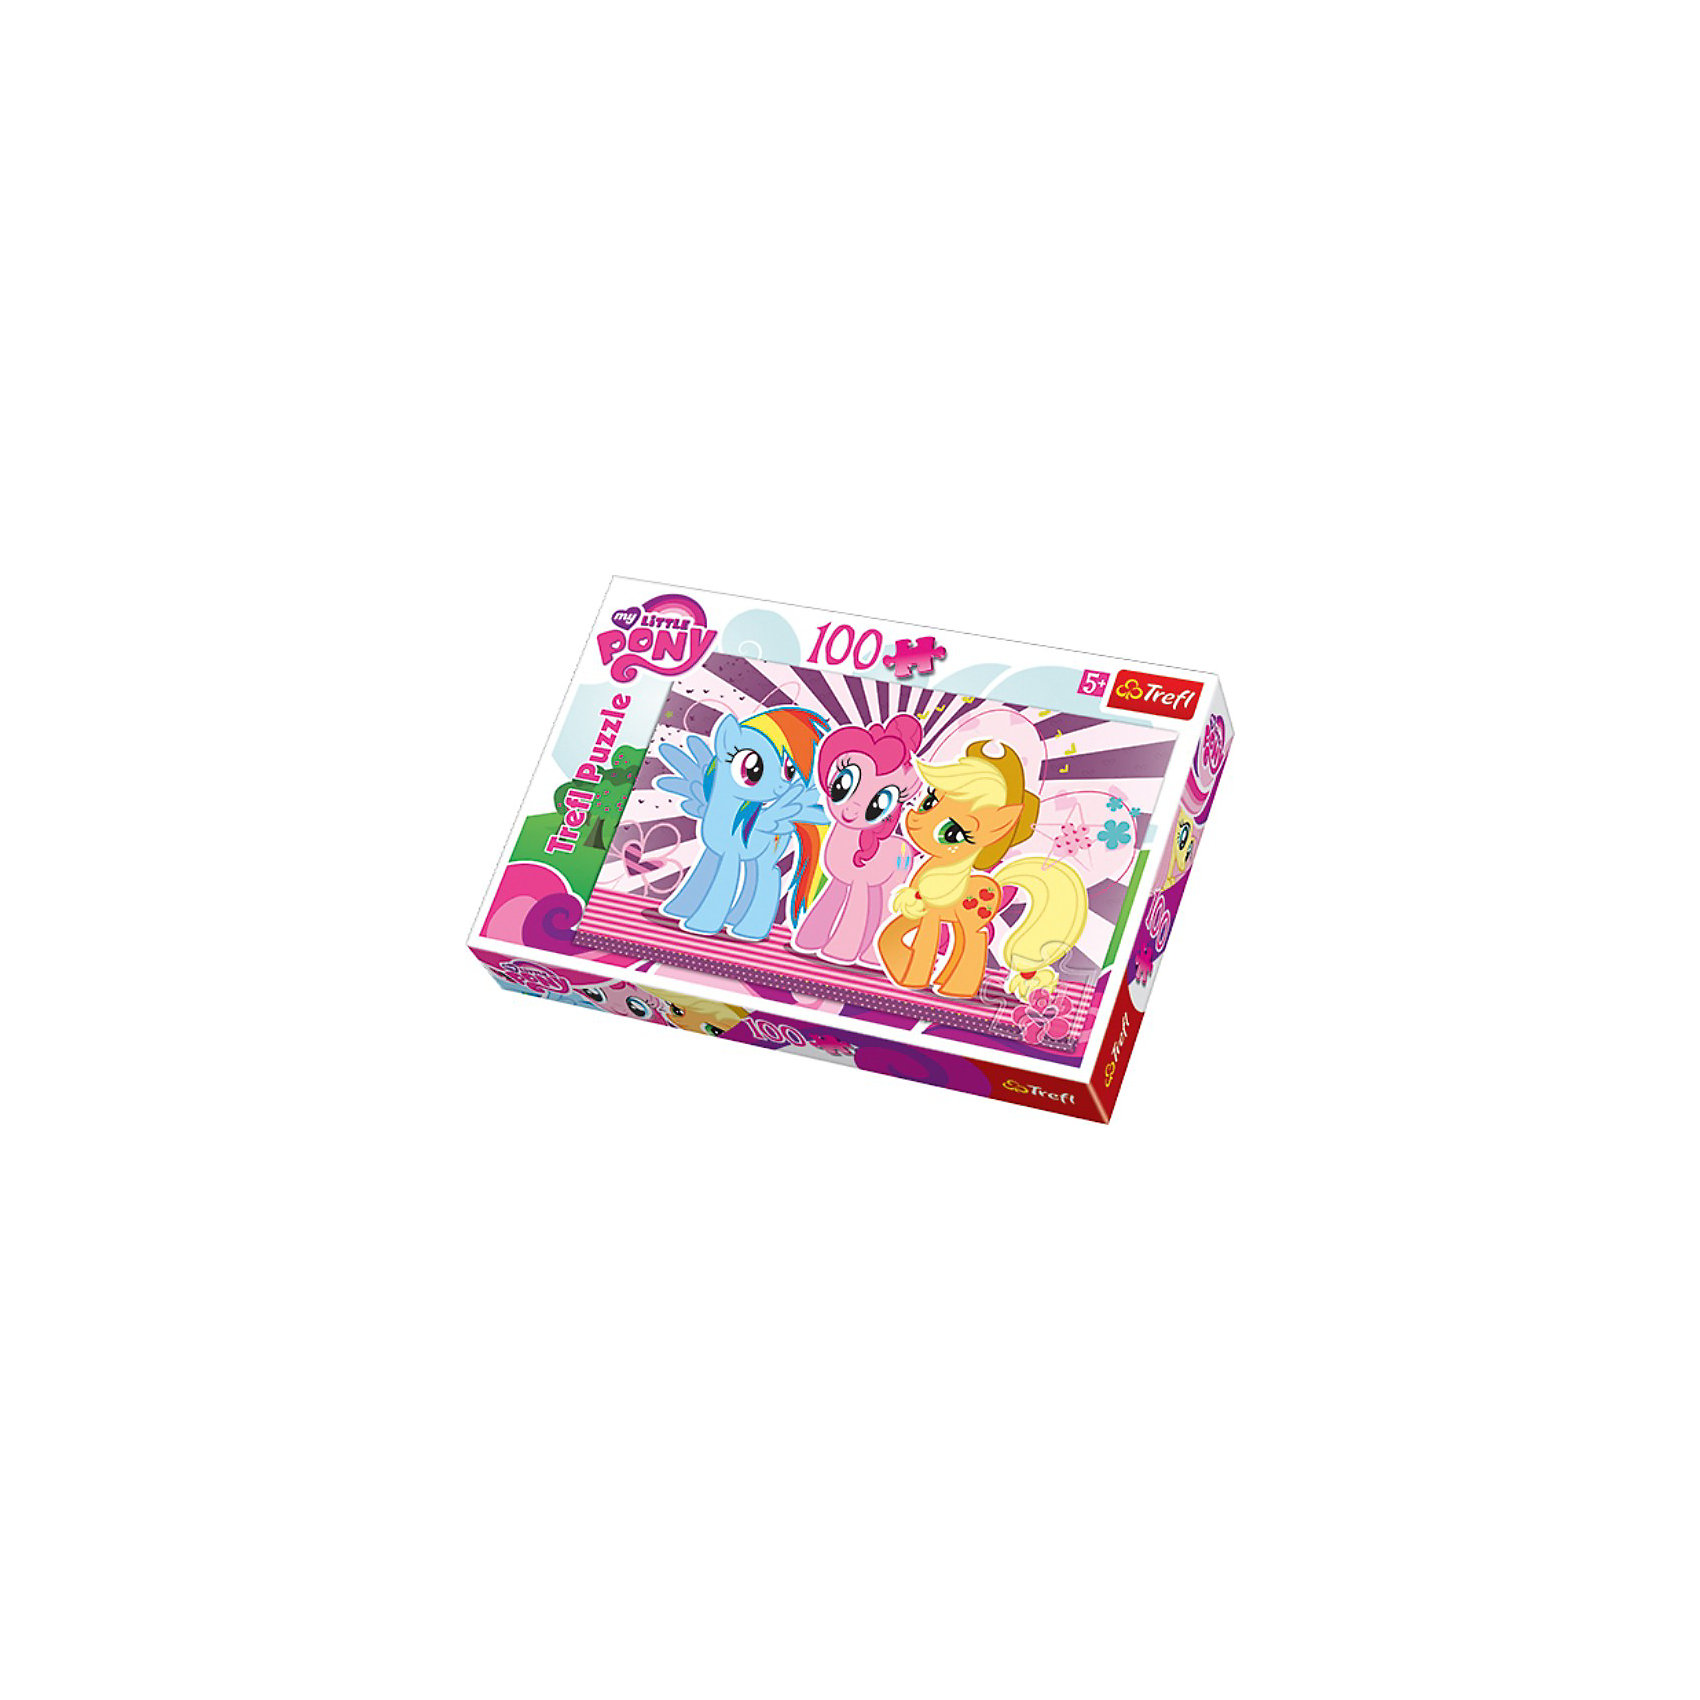 Trefl Пазл My little Pony, 100 деталей, Trefl trefl пазл летающий мэтр